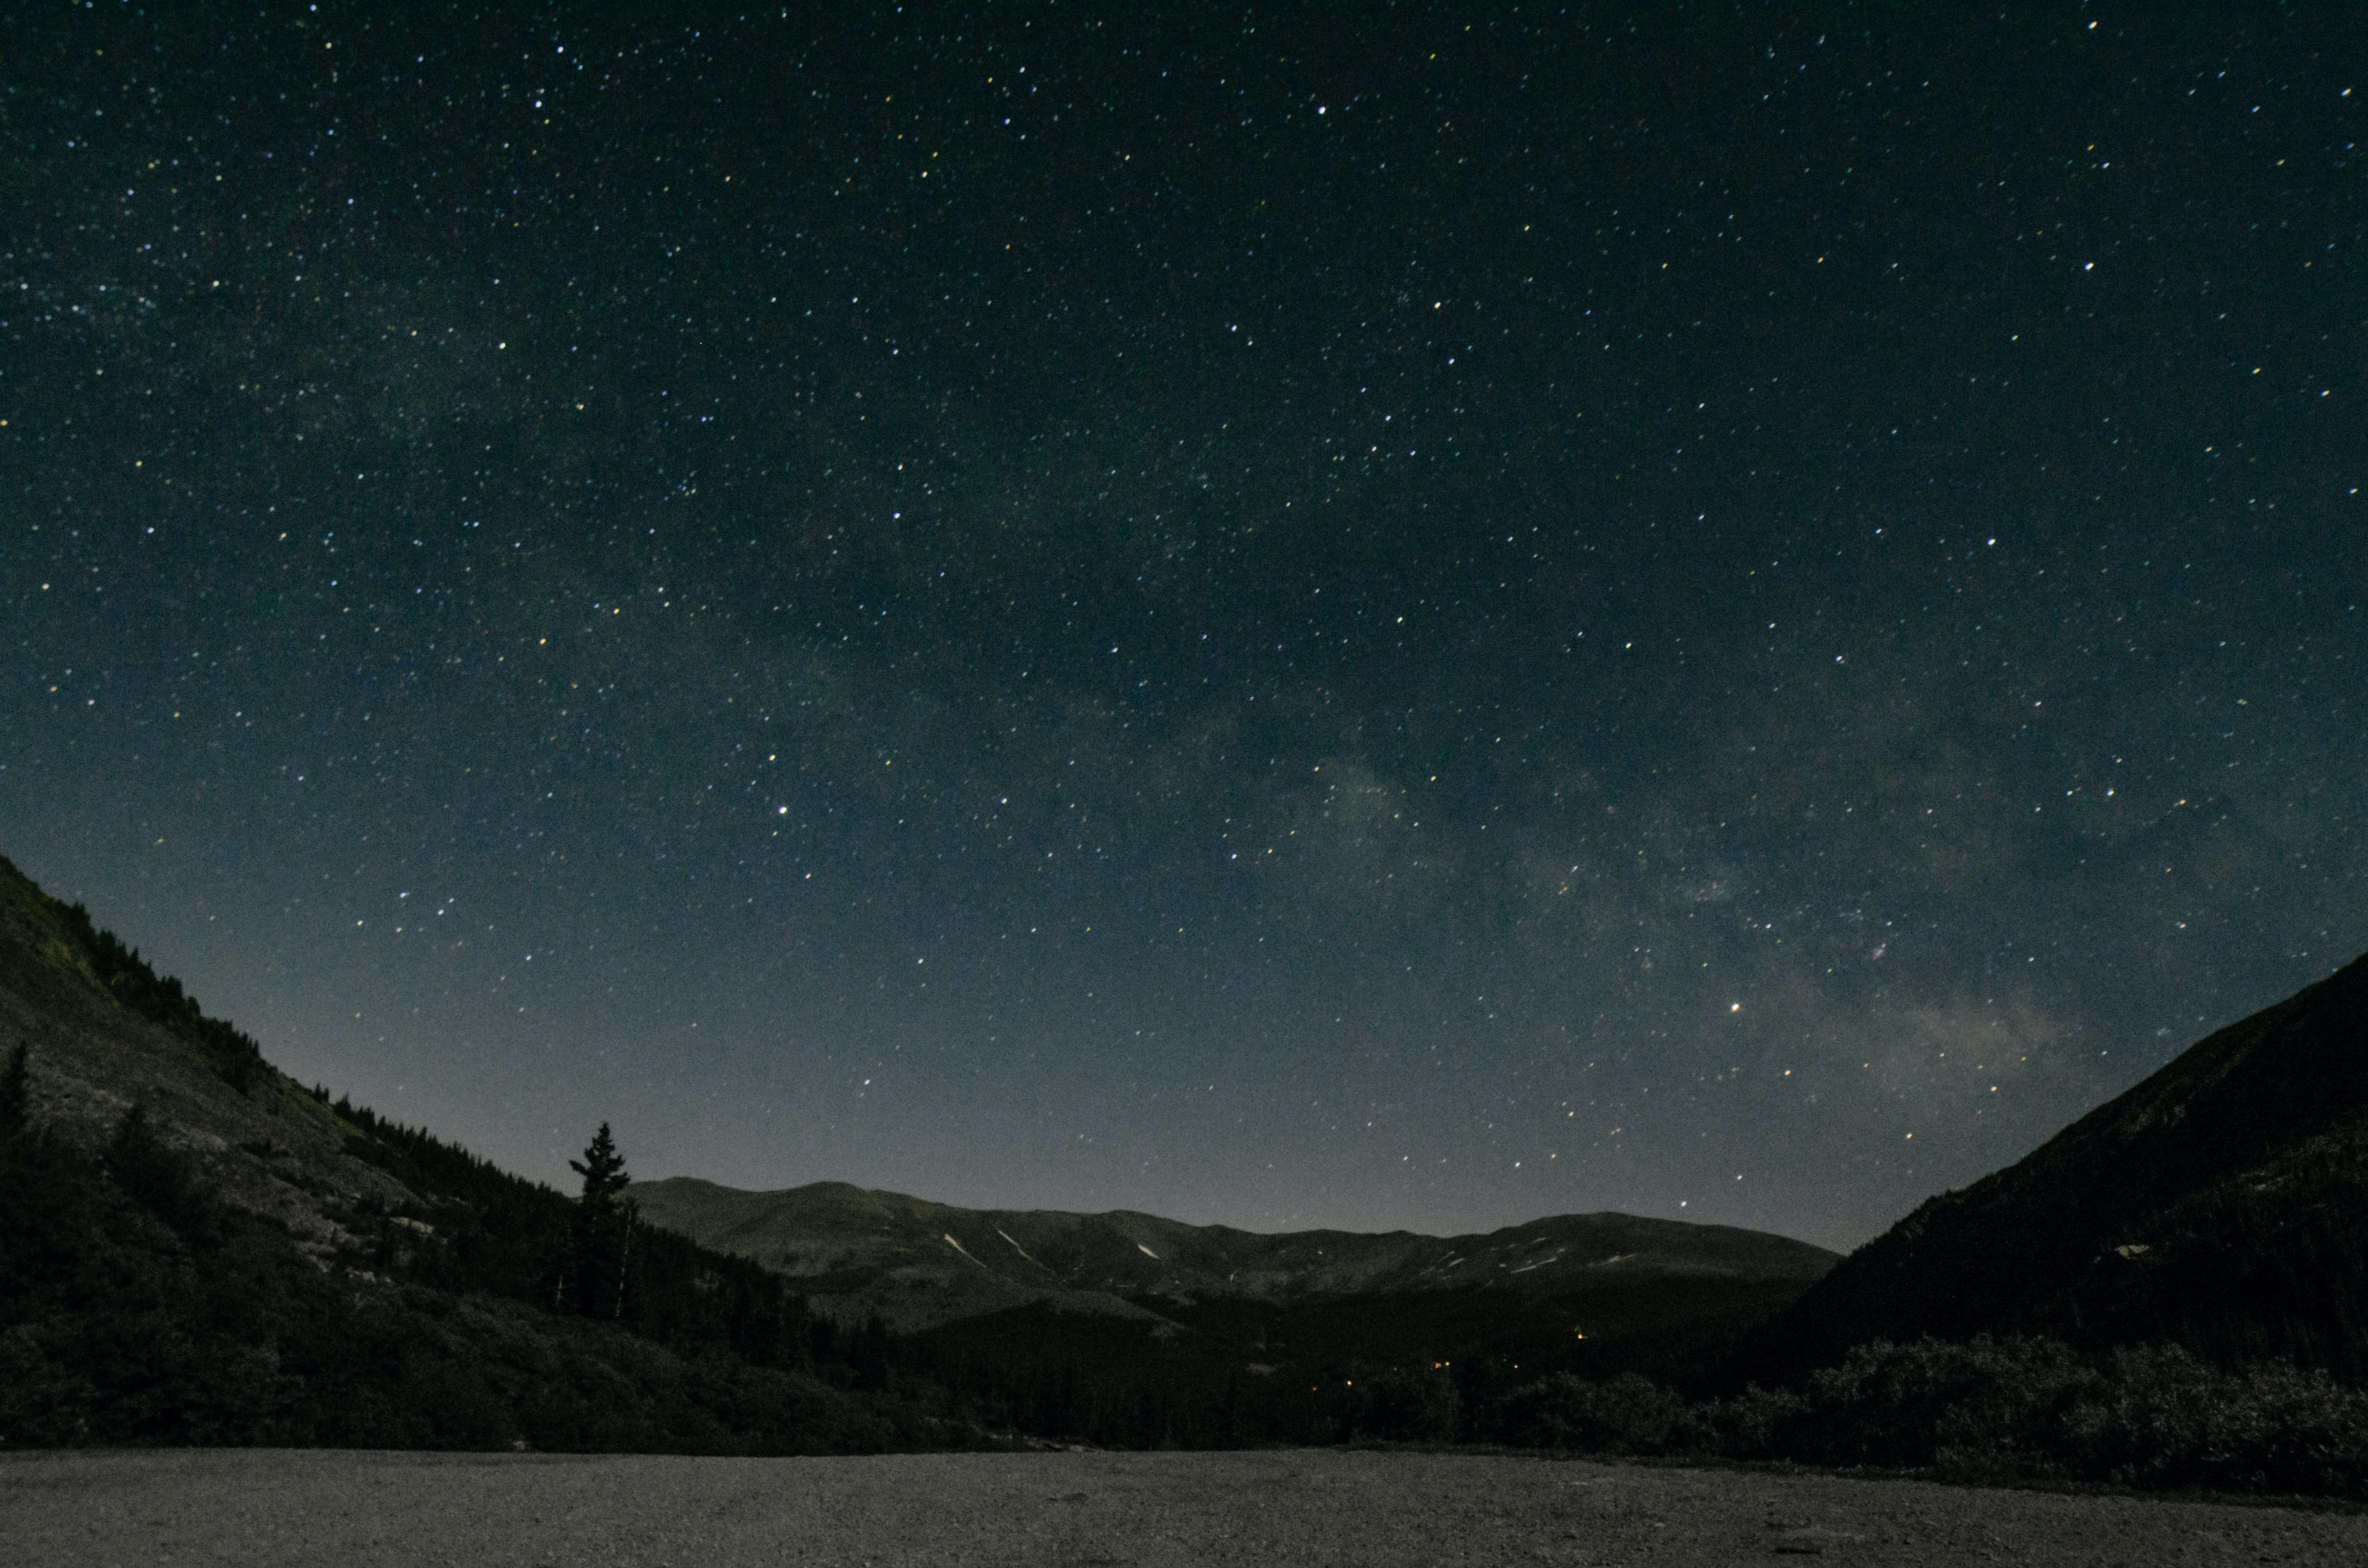 landscape photography of mountain ranges under starry sky